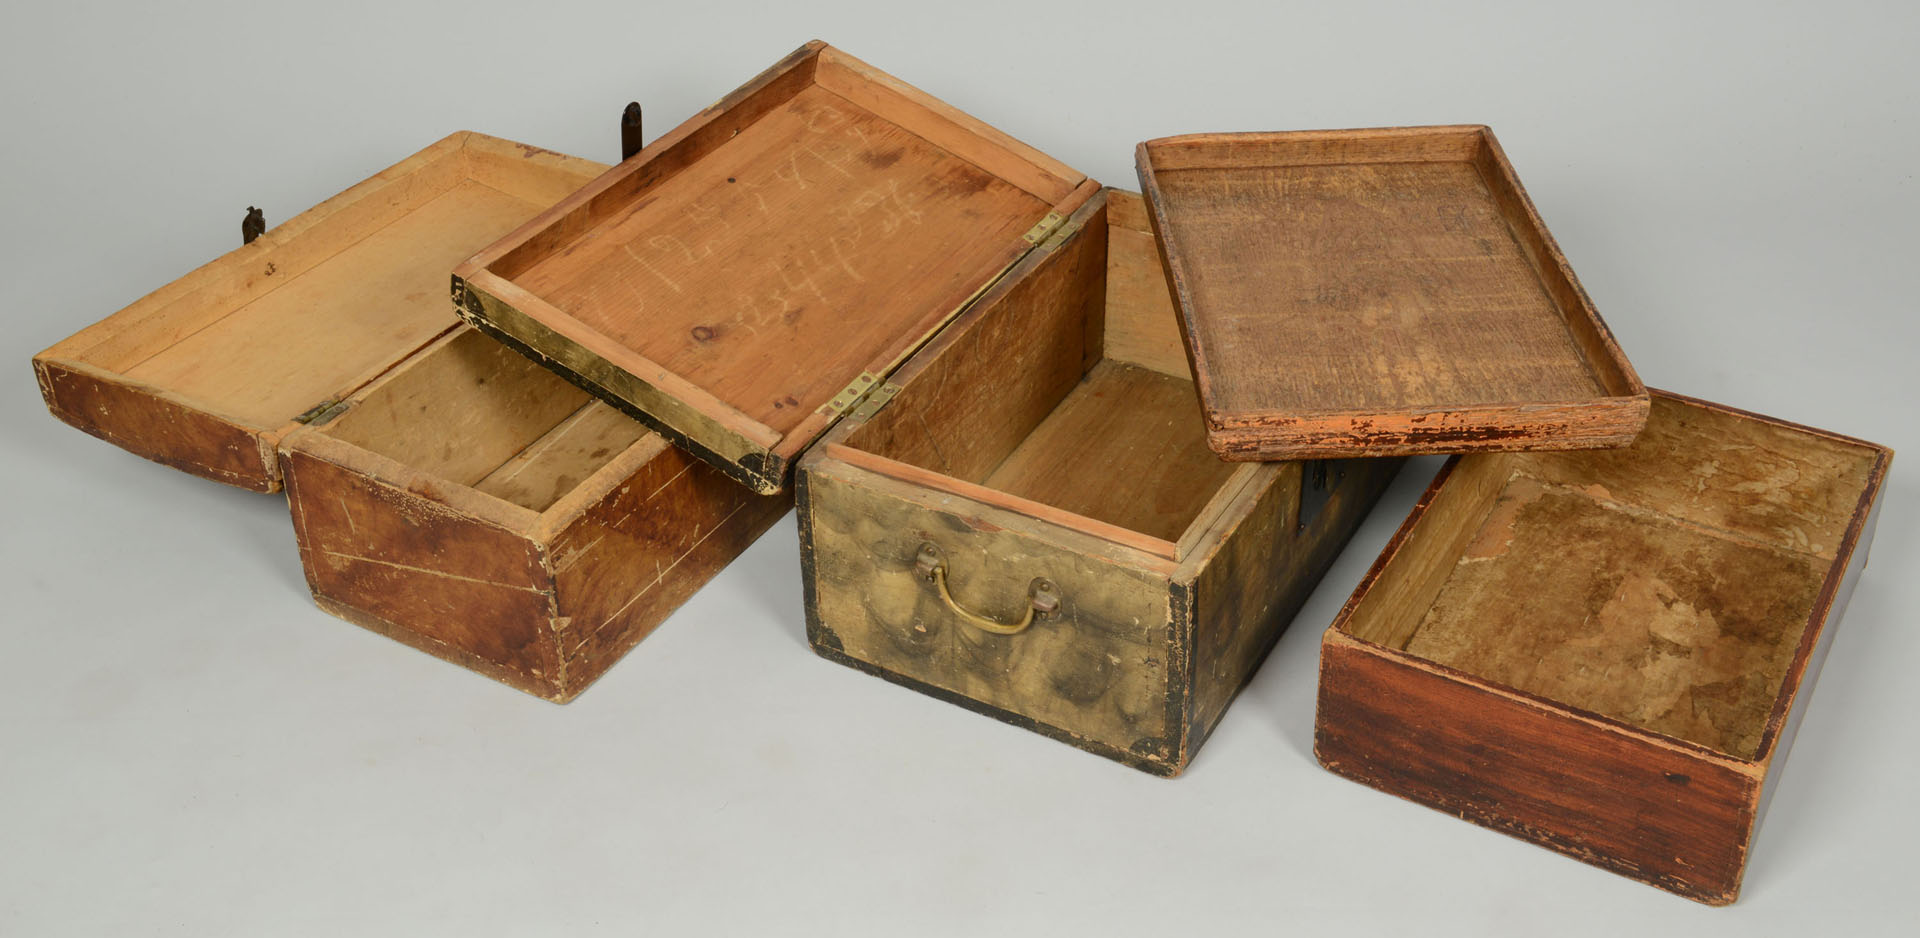 Grouping of 3 Grain painted document boxes